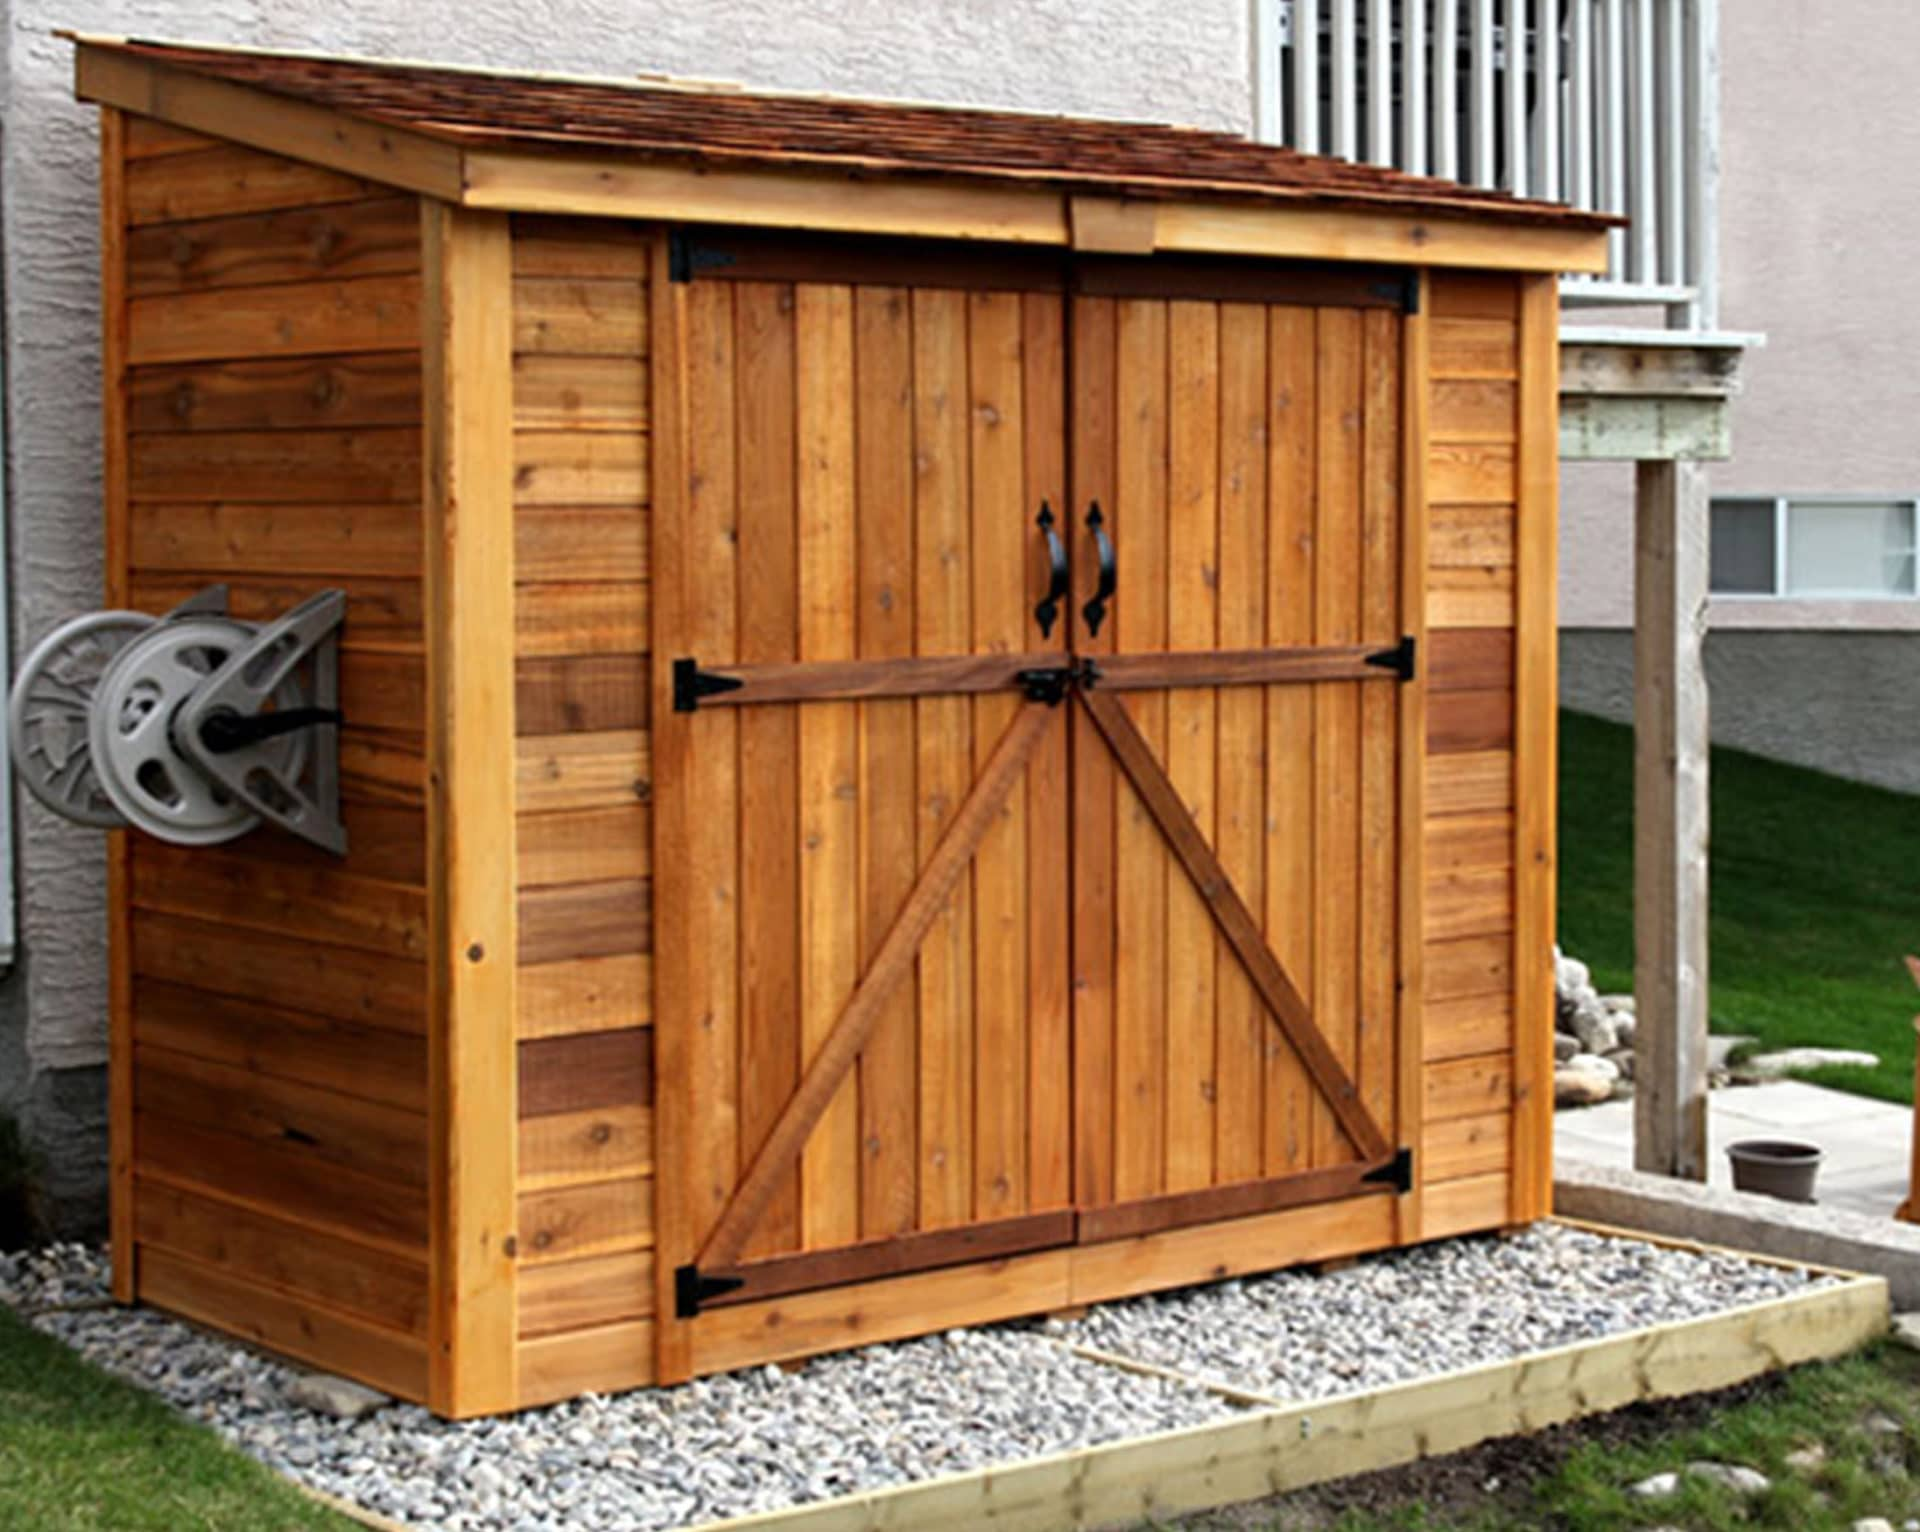 Lean to Shed  SpaceSaver 8x4  Double Doors  Outdoor